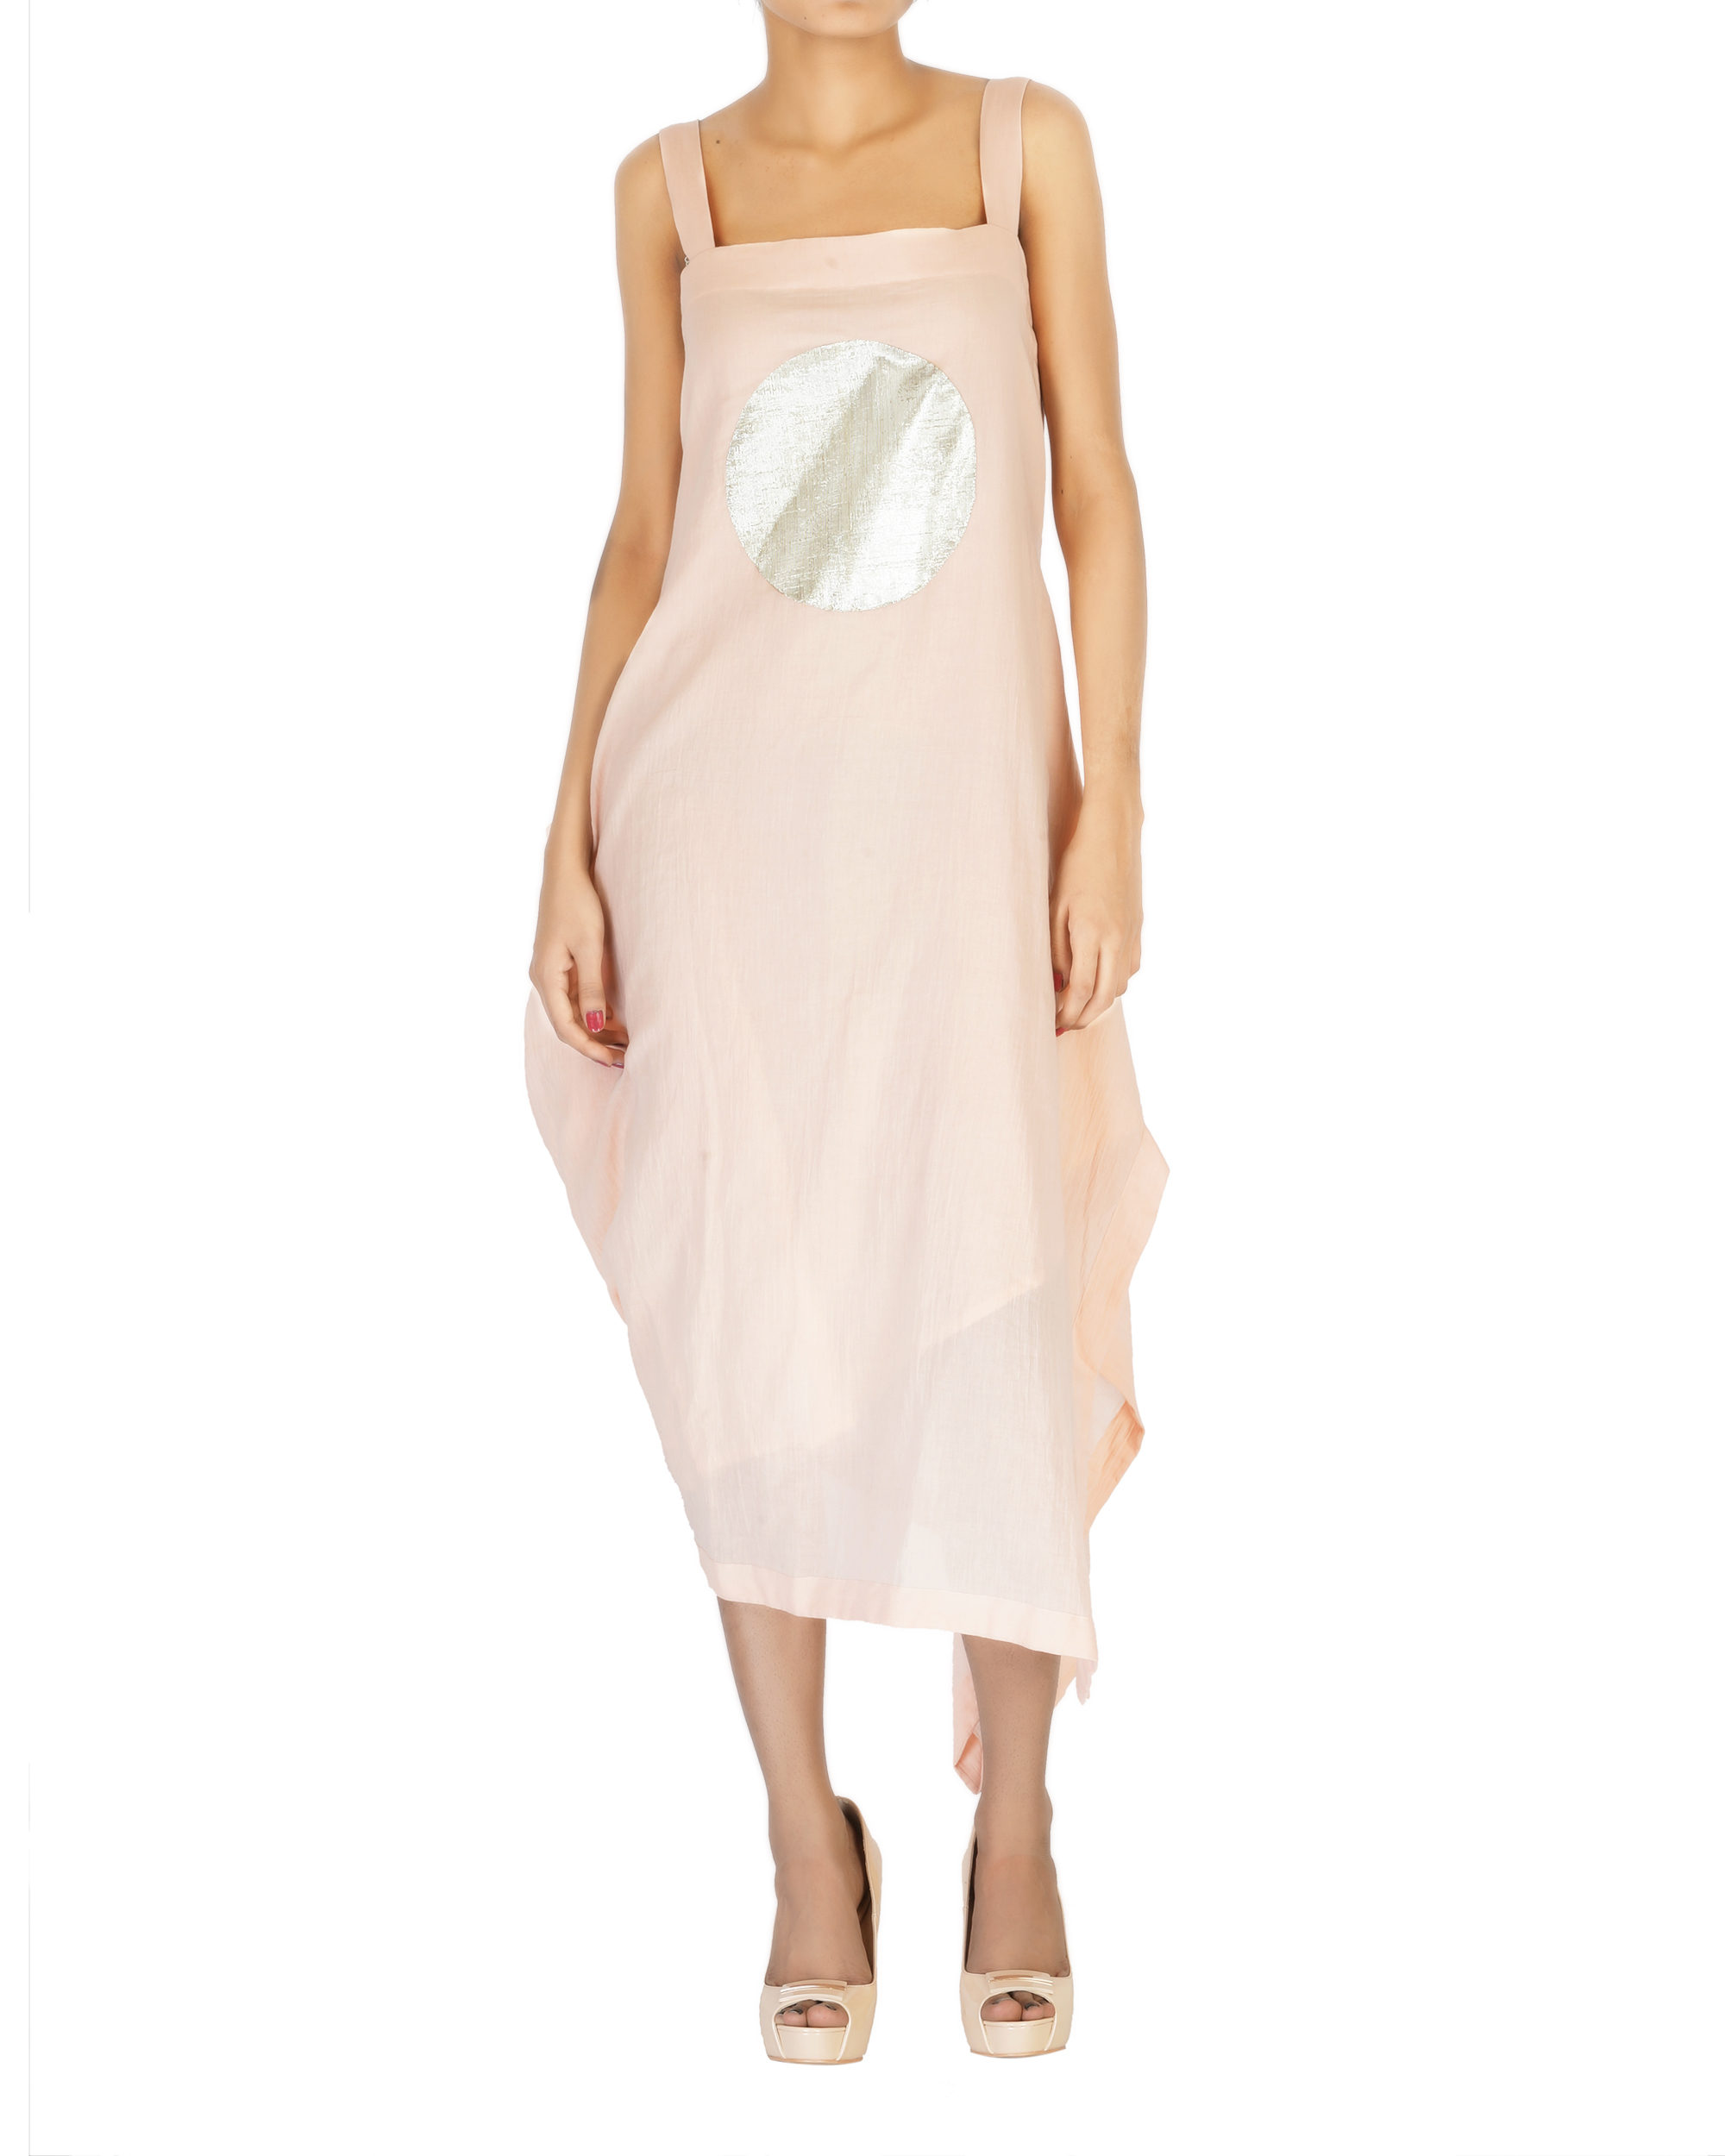 Asymmetrical side cowl dress with straps